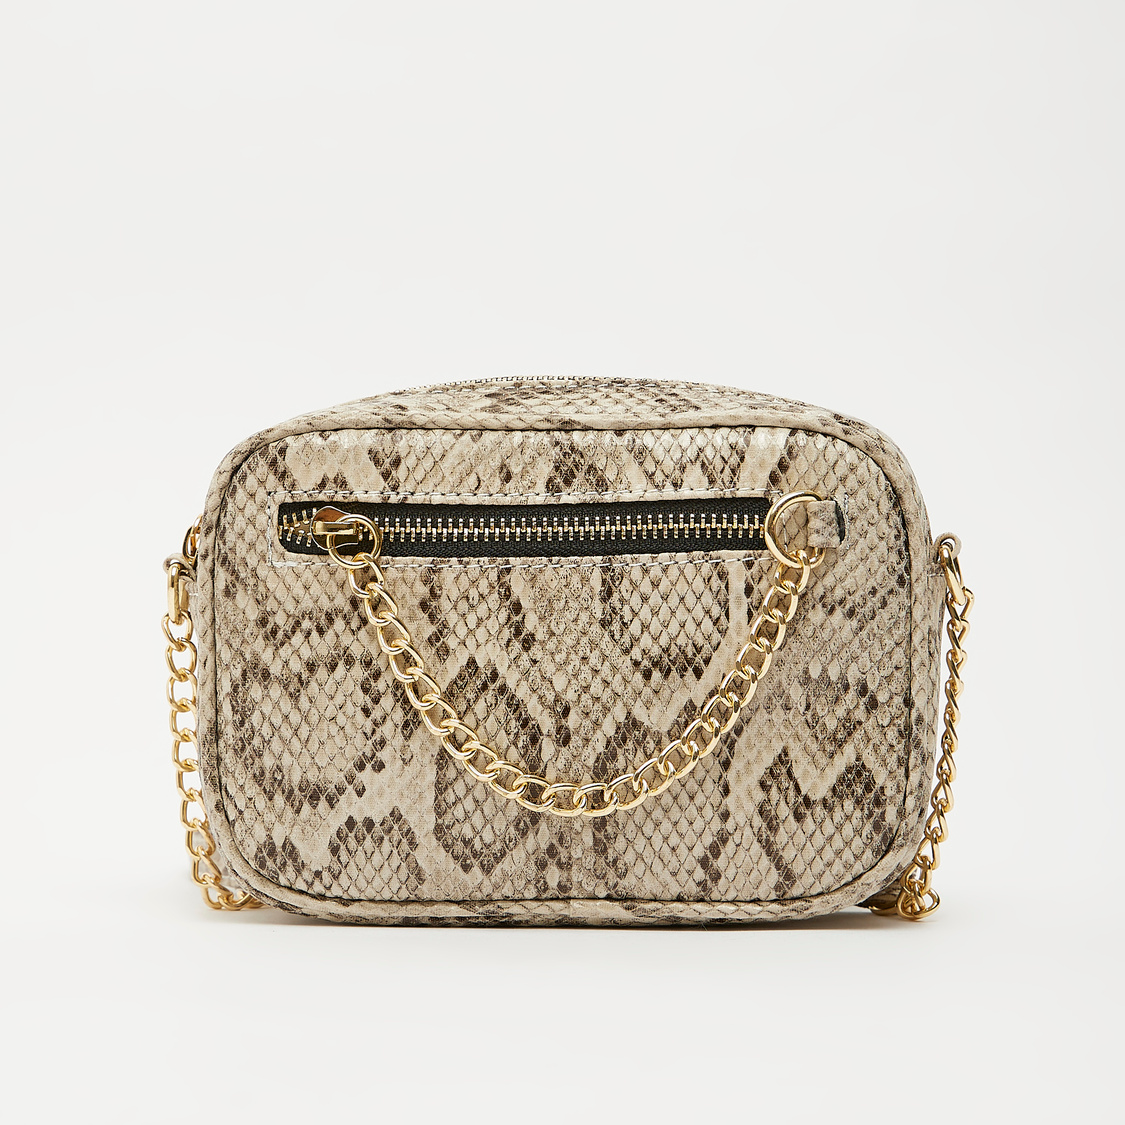 Reptilian Textured Crossbody Bag with Sling Strap